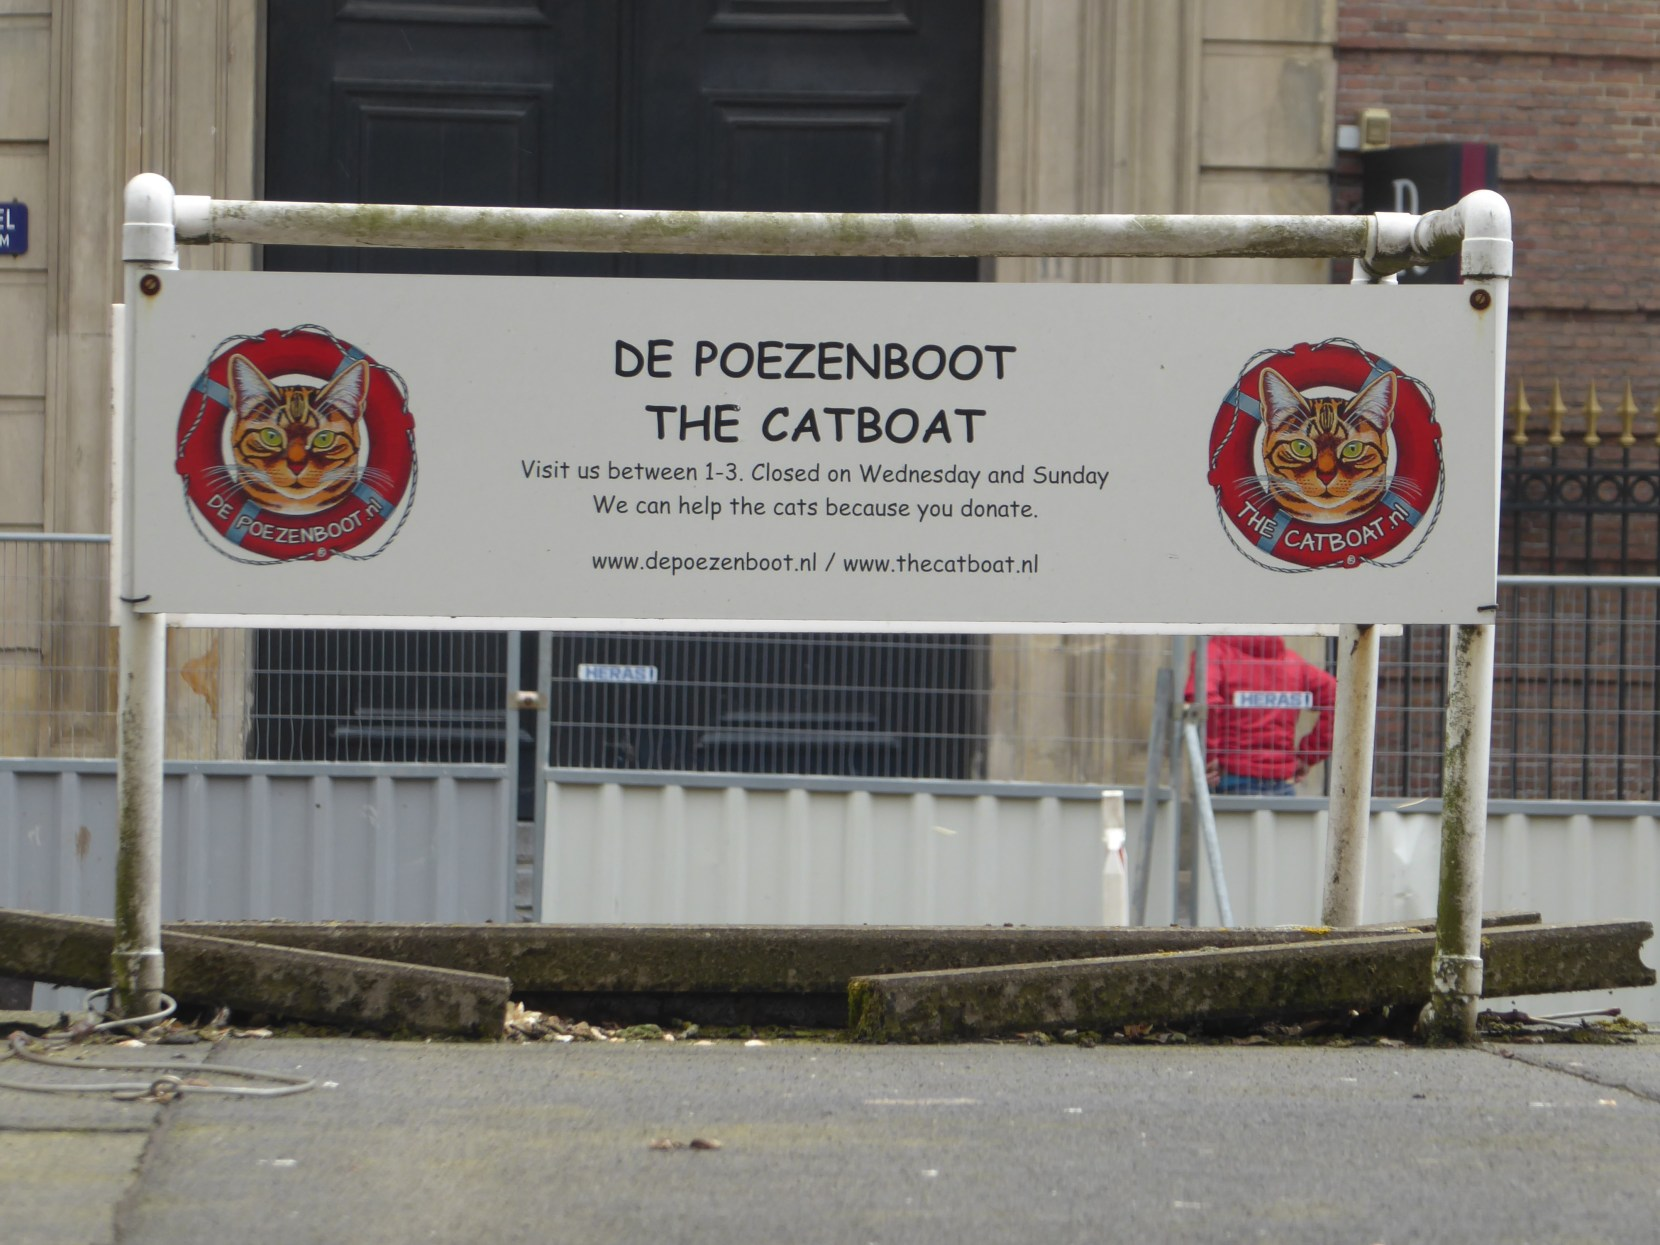 the cat boat catboat de poezenboot amsterdam houseboat cattery cats kitten kittens cute animal animals sanctuary shelter charity